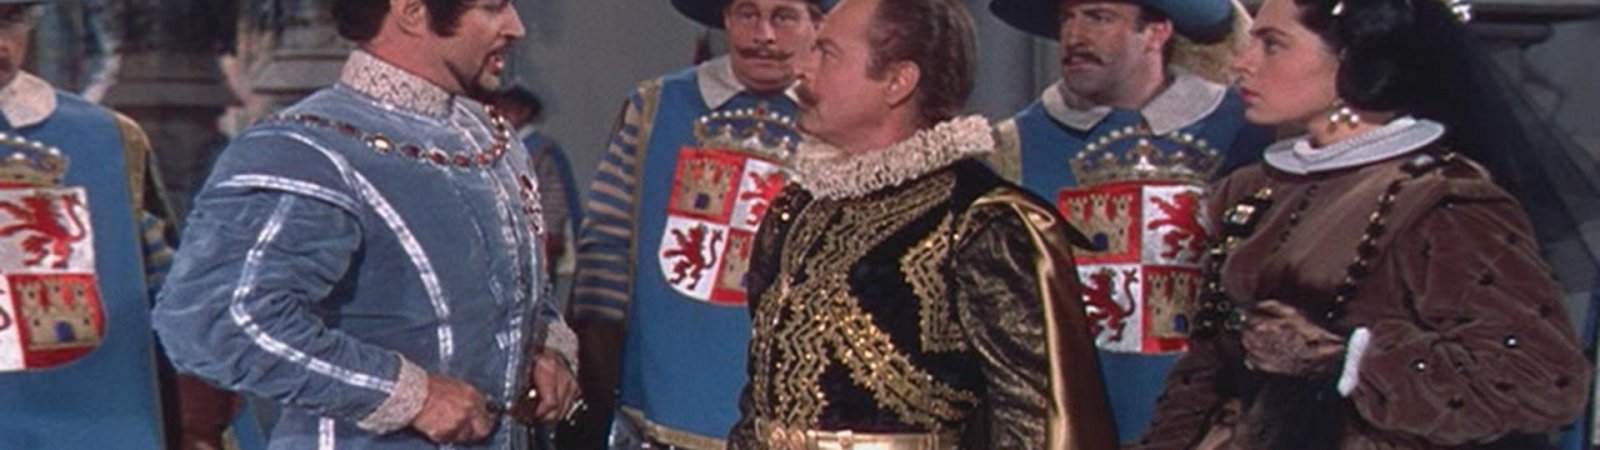 Photo du film : Les aventures de don juan